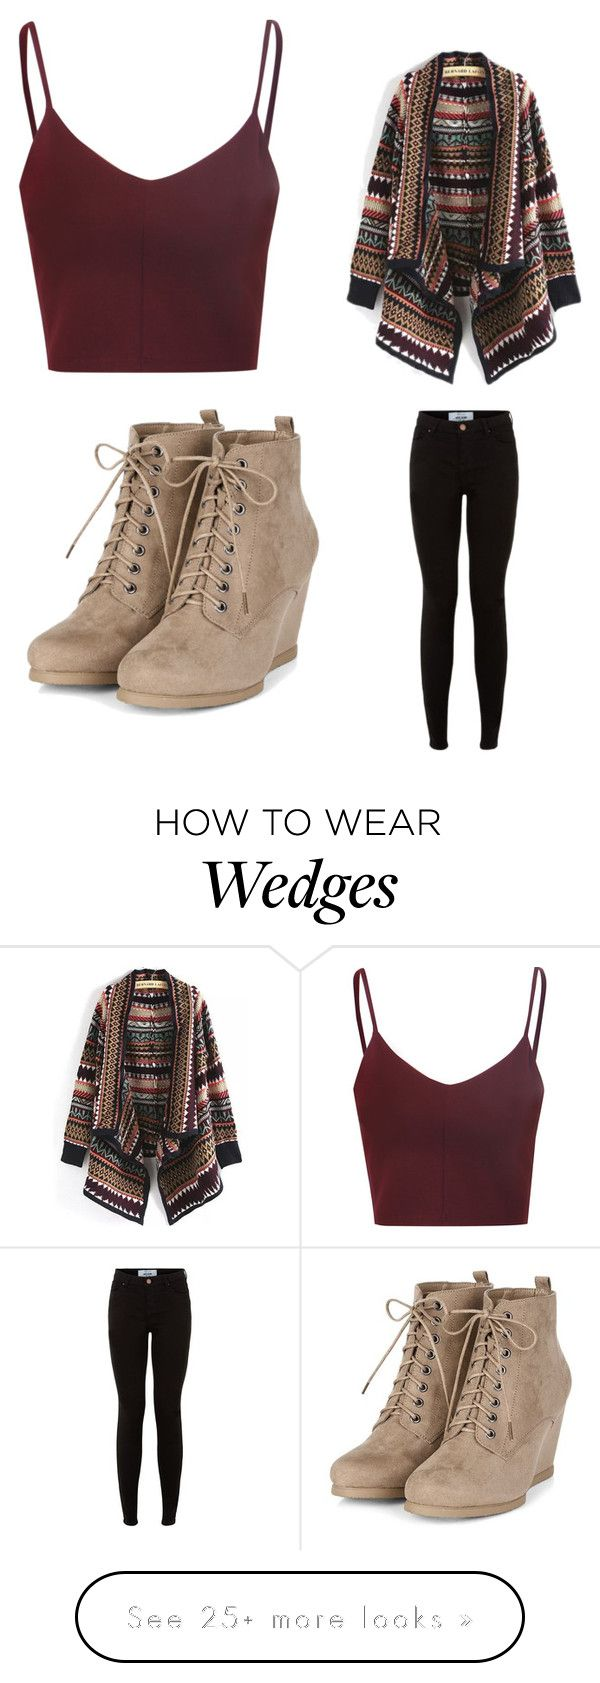 """Untitled #103"" by tristin-i on Polyvore featuring Glamorous"